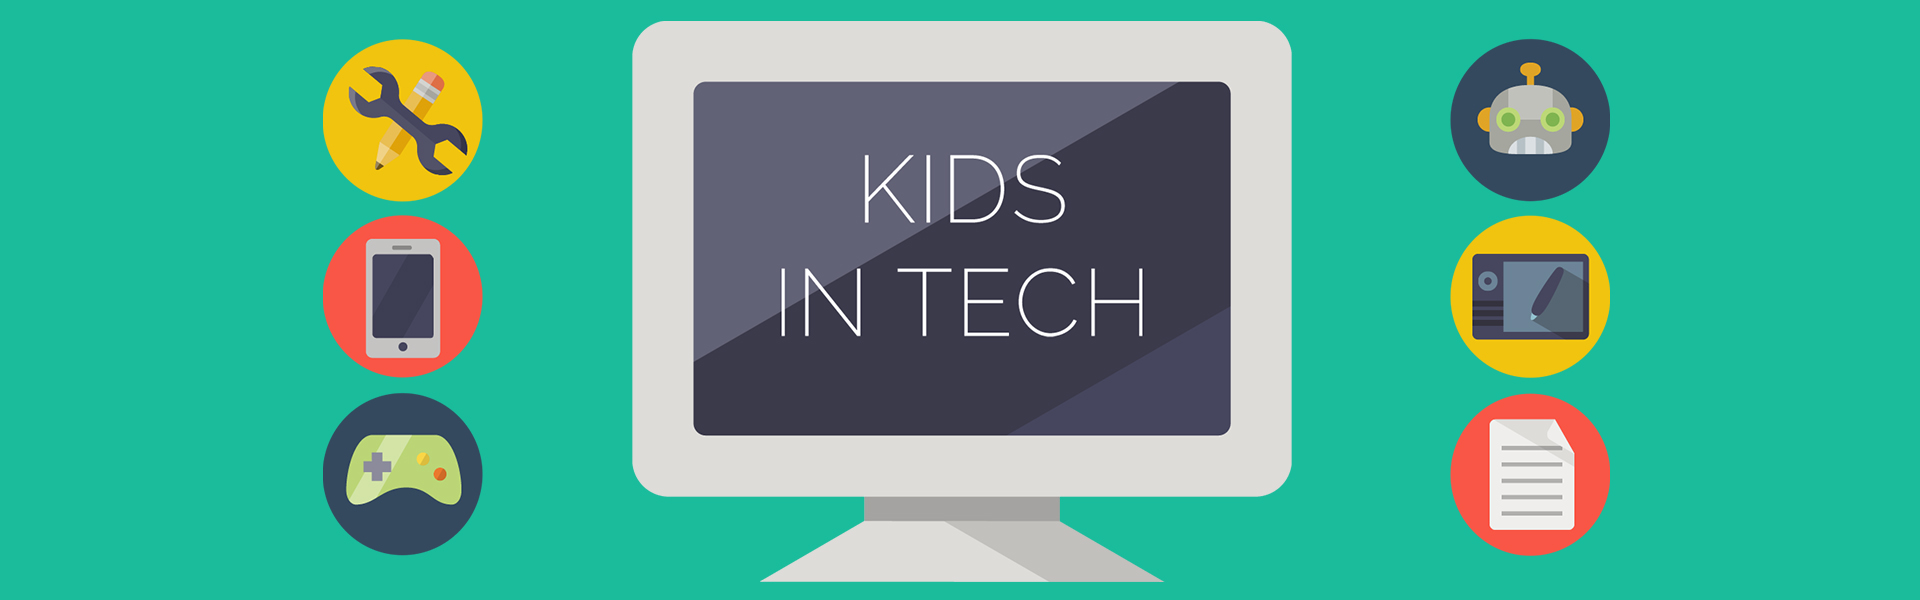 Kids In Tech Inc. – KIT